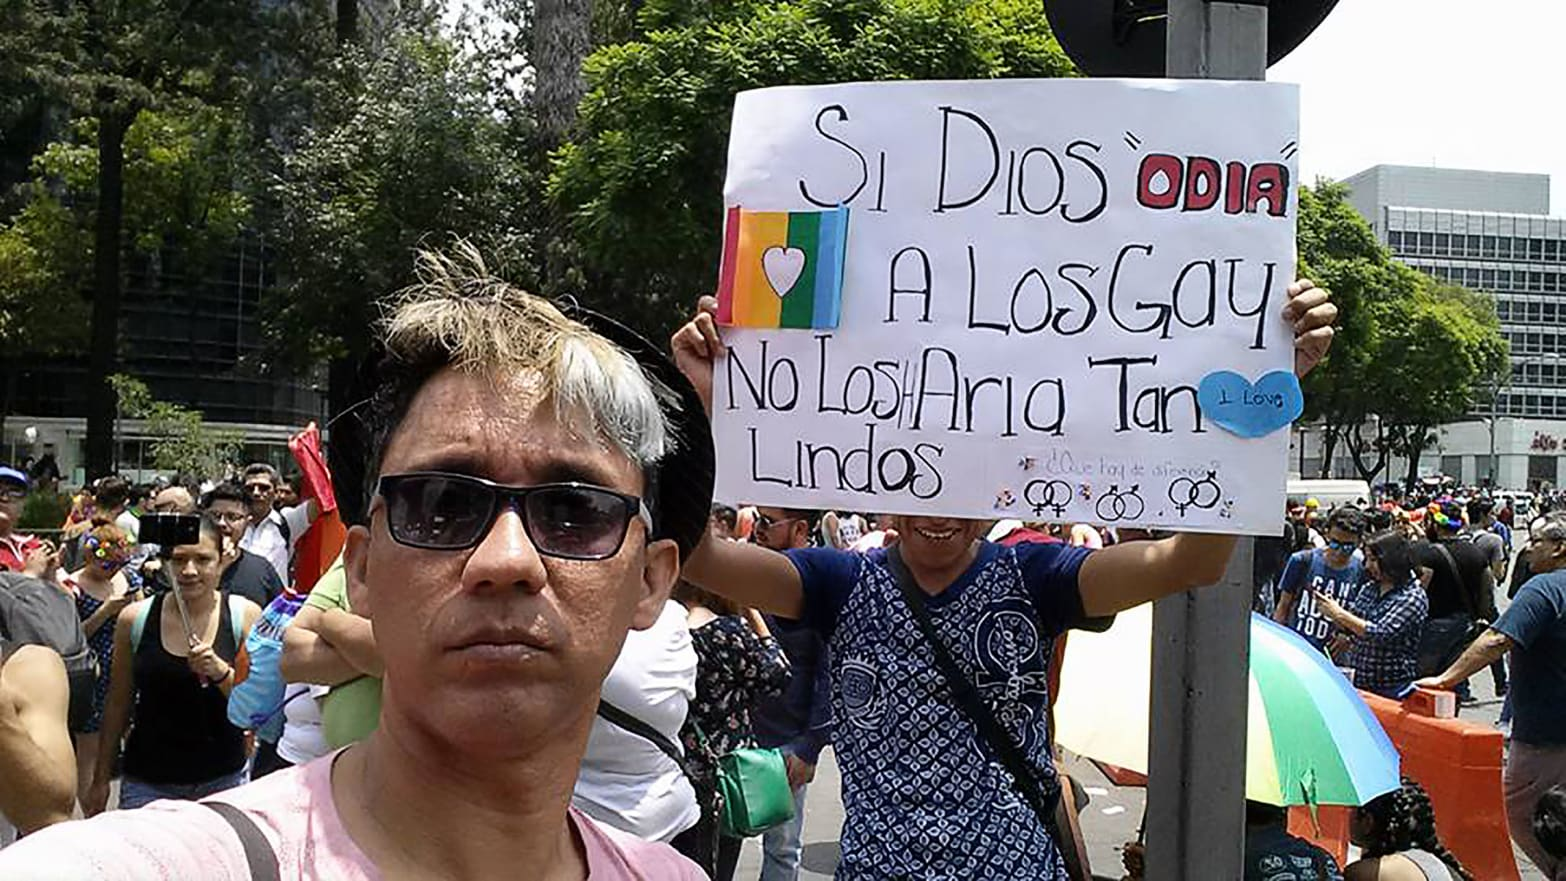 Caleb Orozco fought, successfully, to overturn Belize's anti-gay sodomy laws.